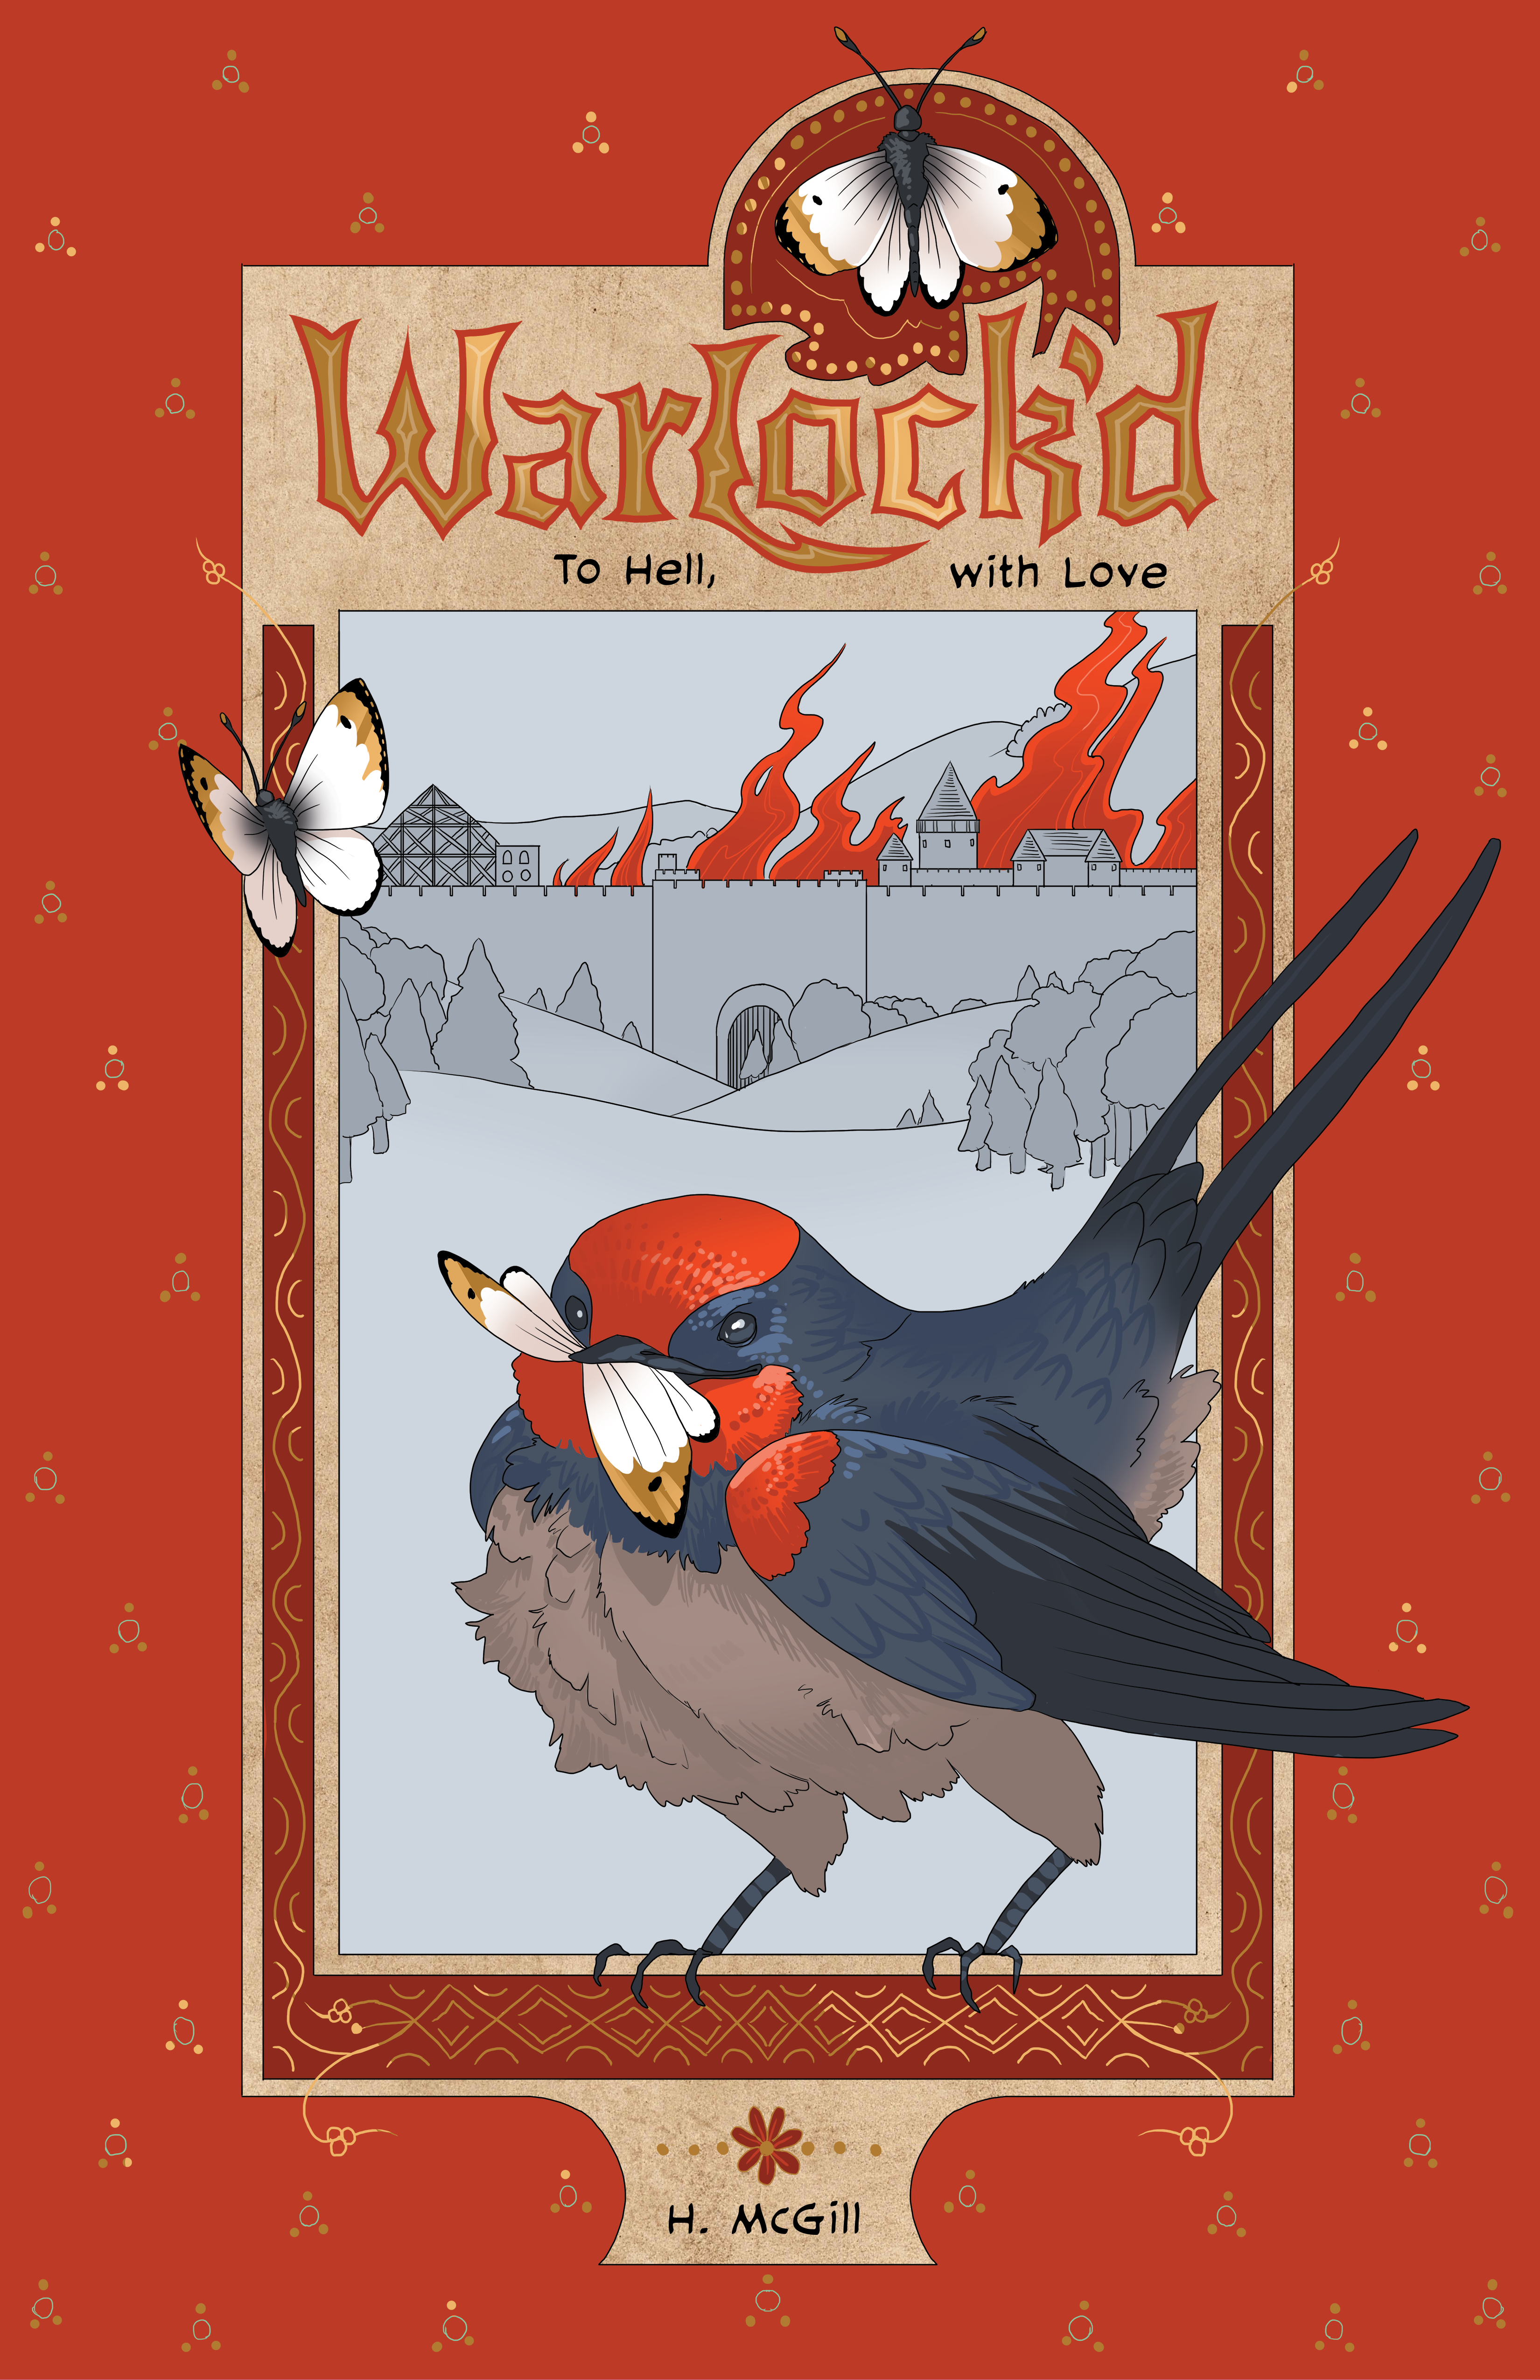 A red book cover with gold embellishments. The tile is 'Warlock'd: To Hell, with Love' and it depicts a mischievous barn swallow with a moth in her mouth. Behind her, medieval Paris burns.